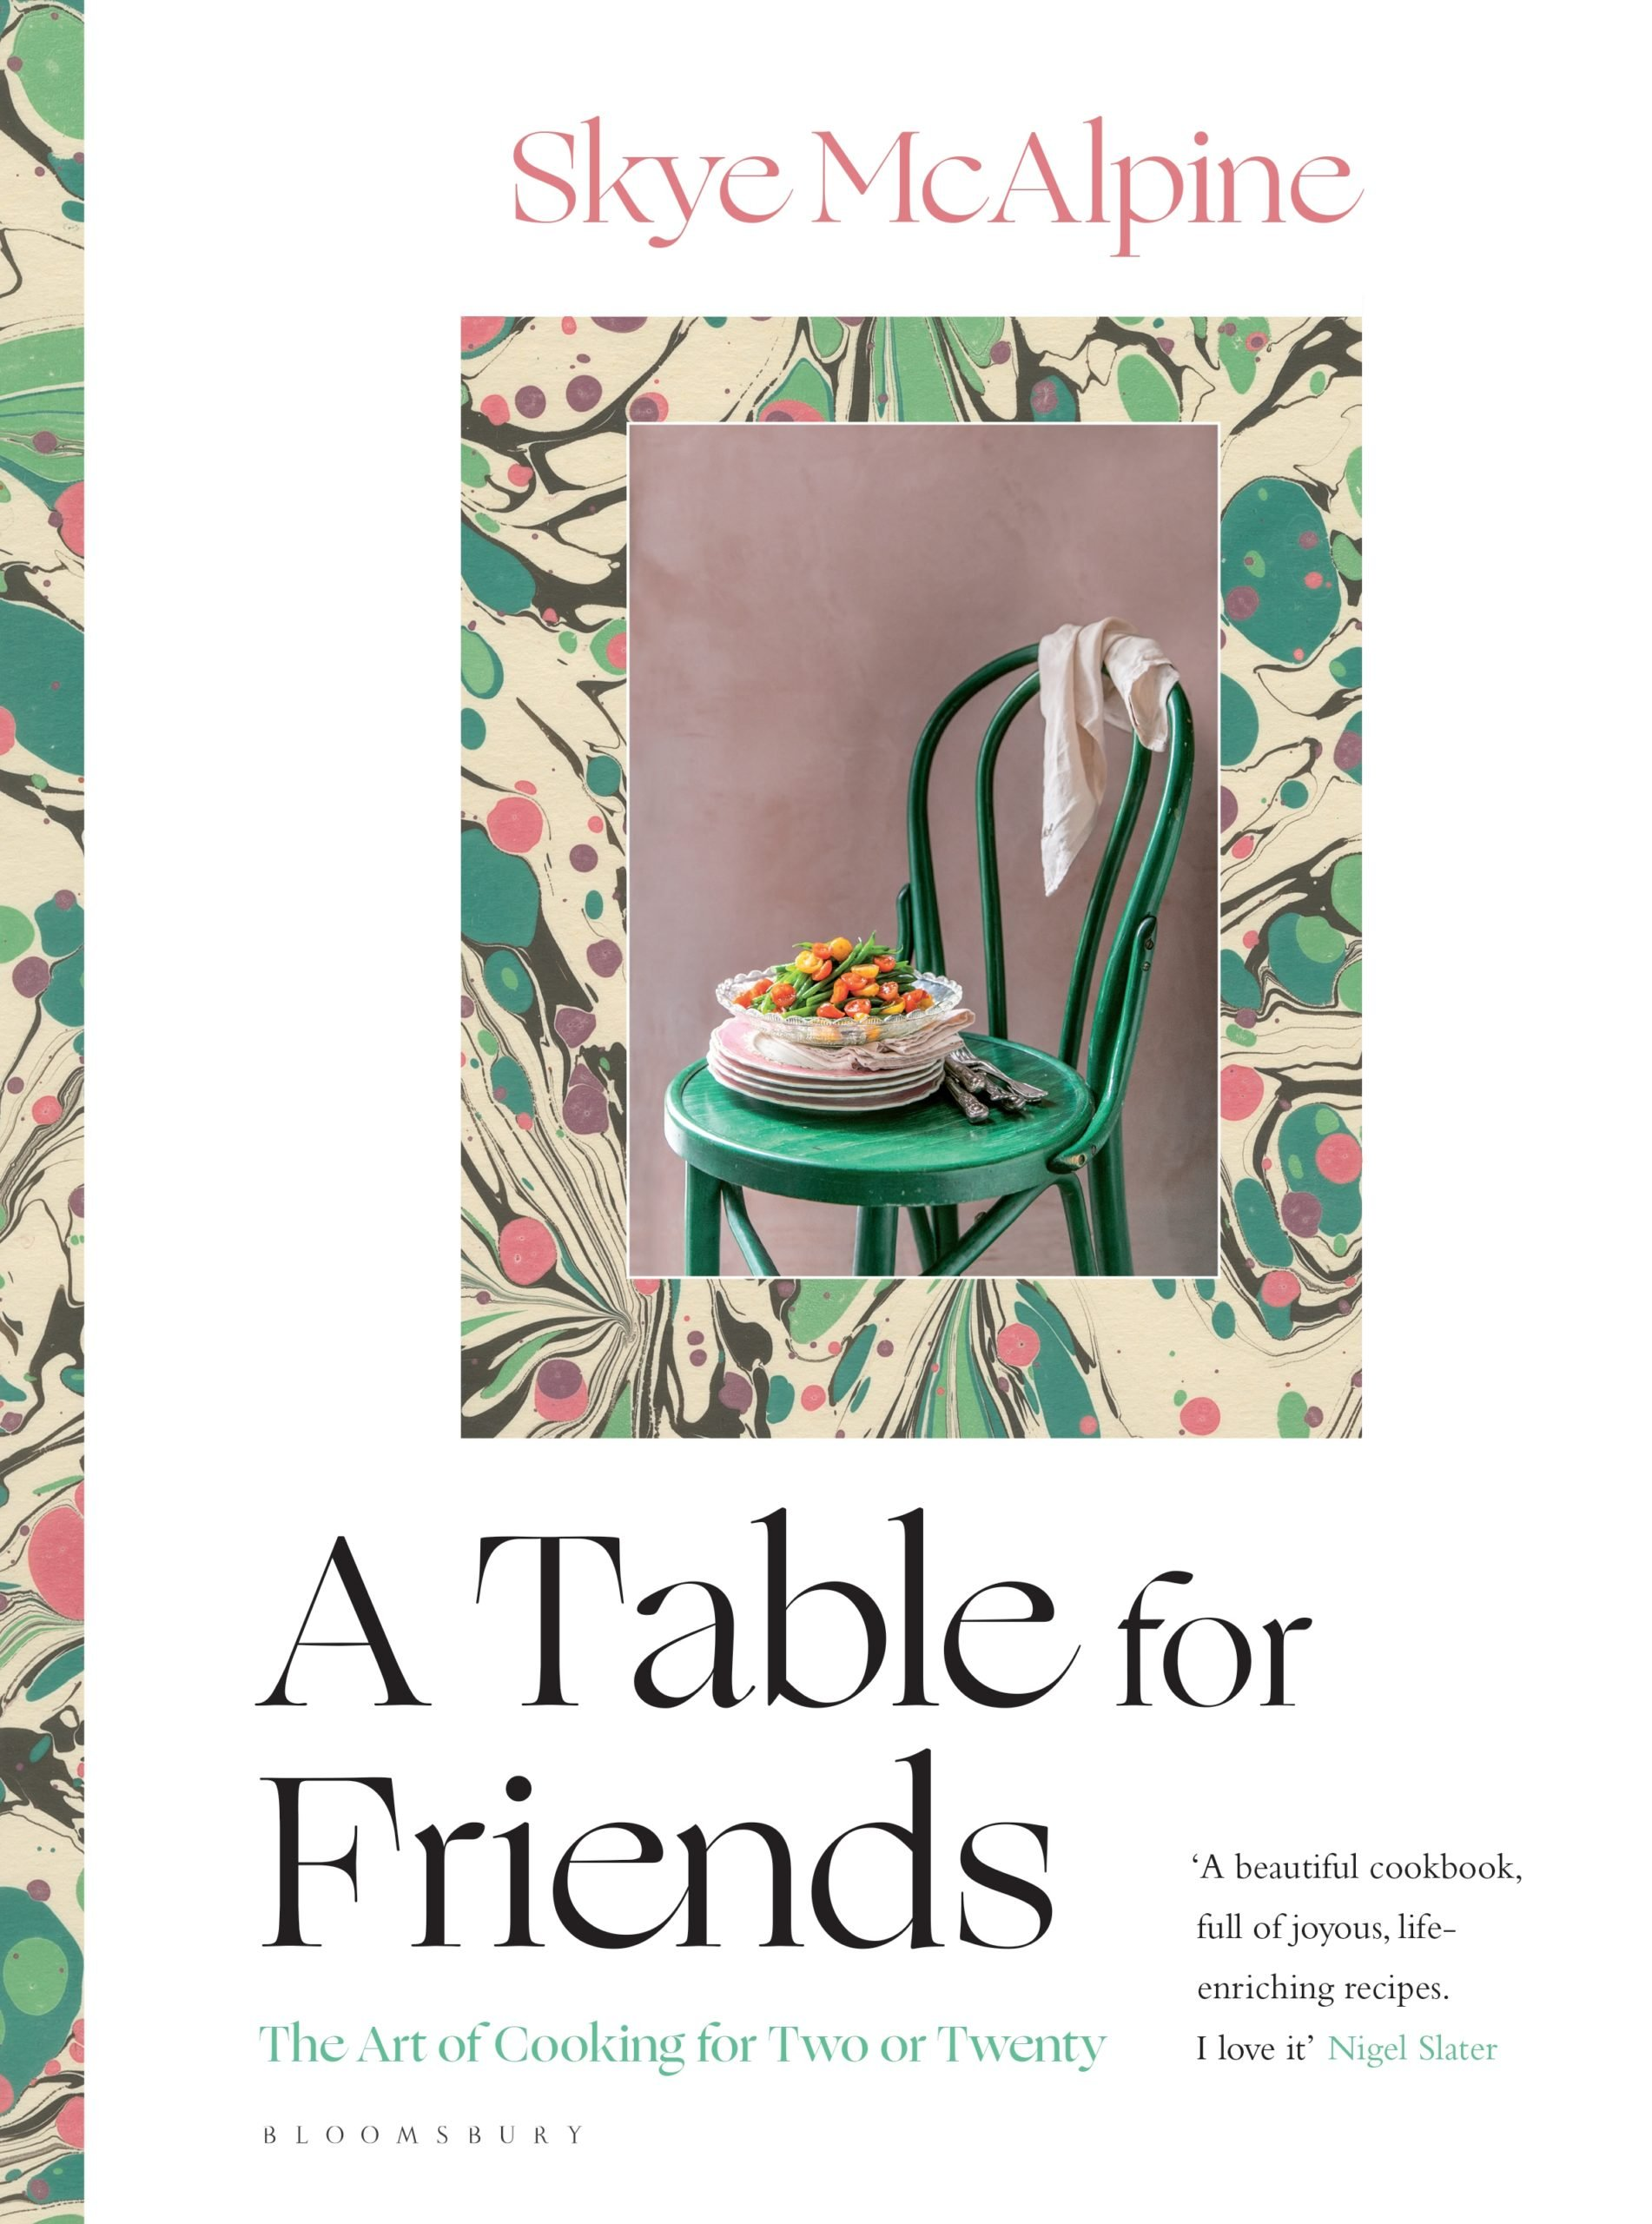 table for friends by Skye McAlpine